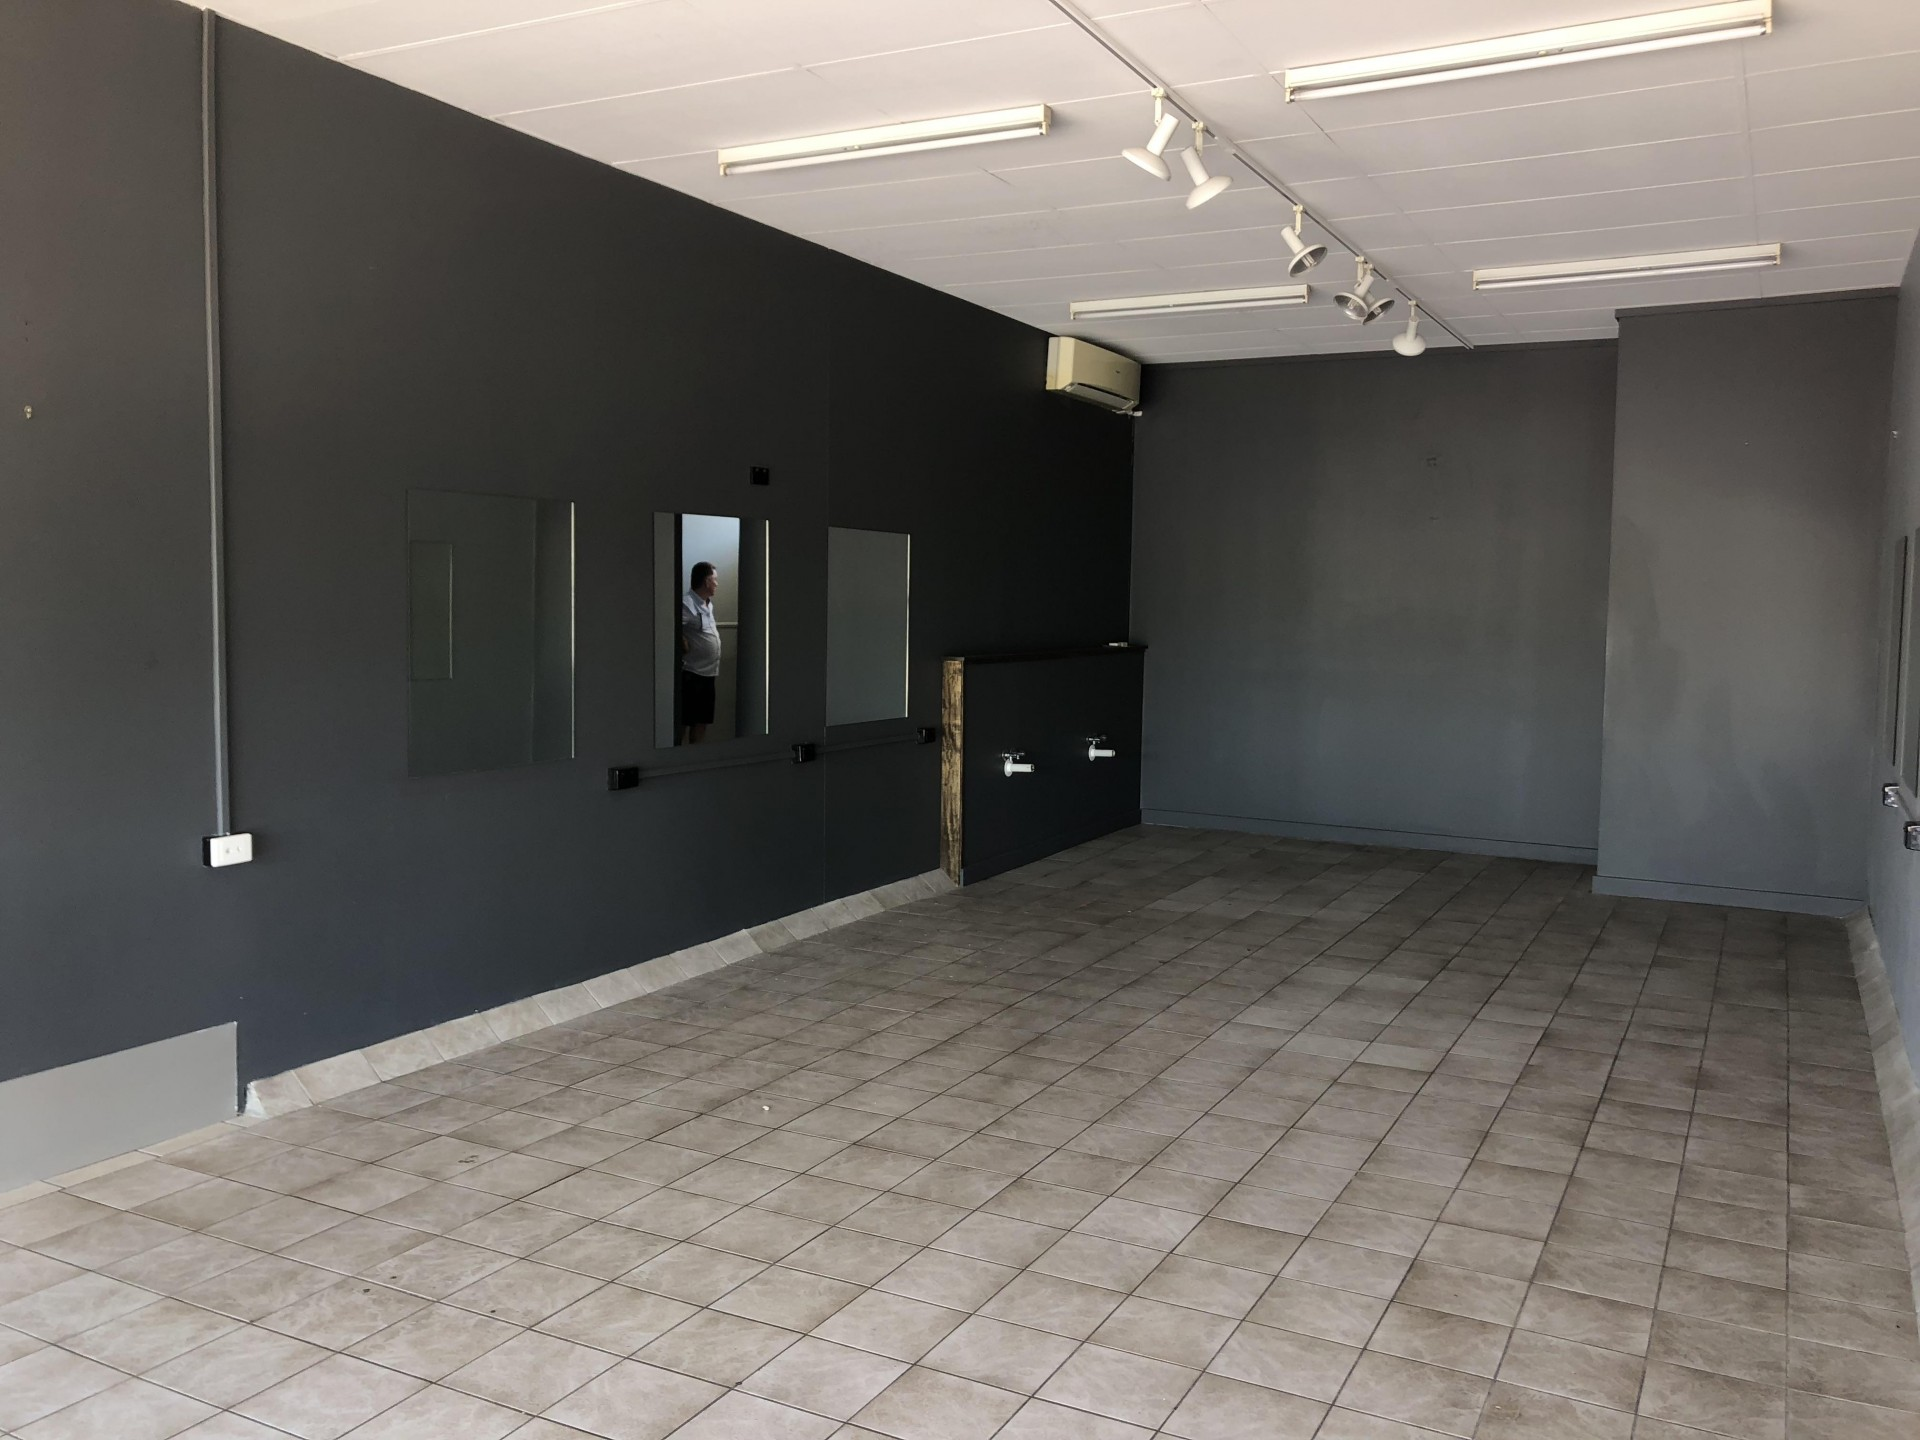 MOTIVATED OWNER - 65m2 SHOP VACANT & READY TO GO!